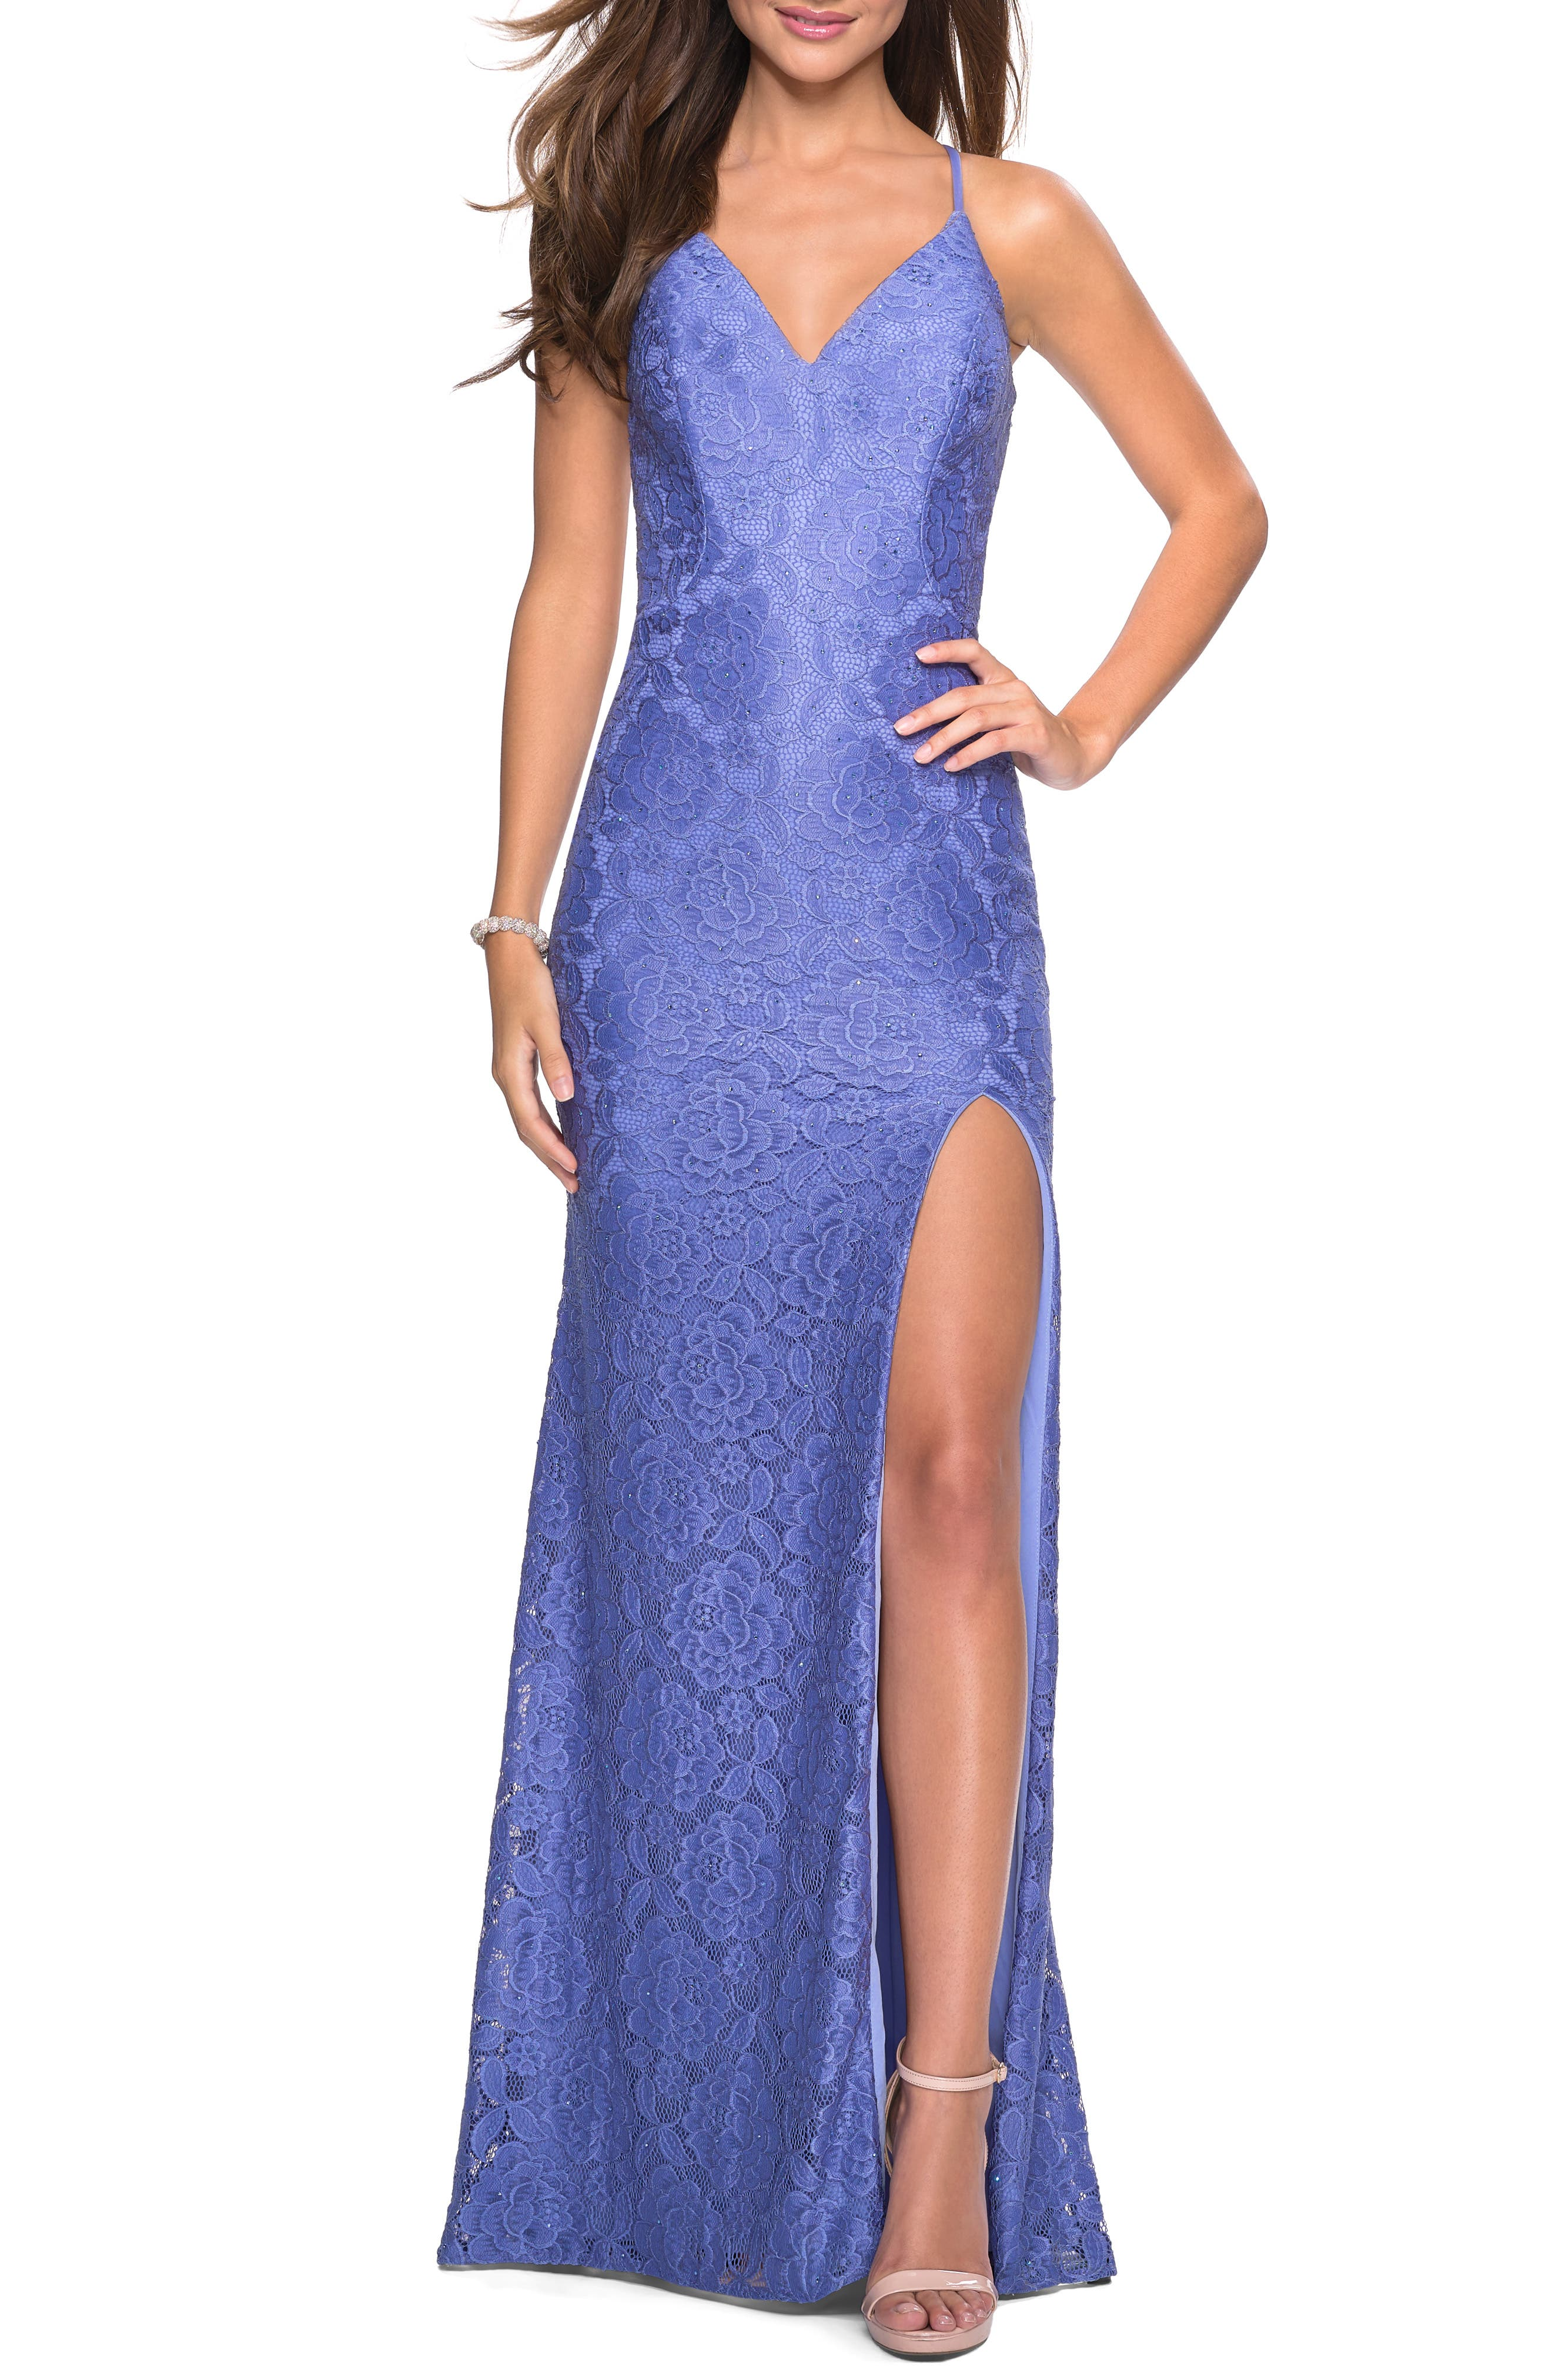 La Femme Strappy Back Lace Evening Dress, Blue